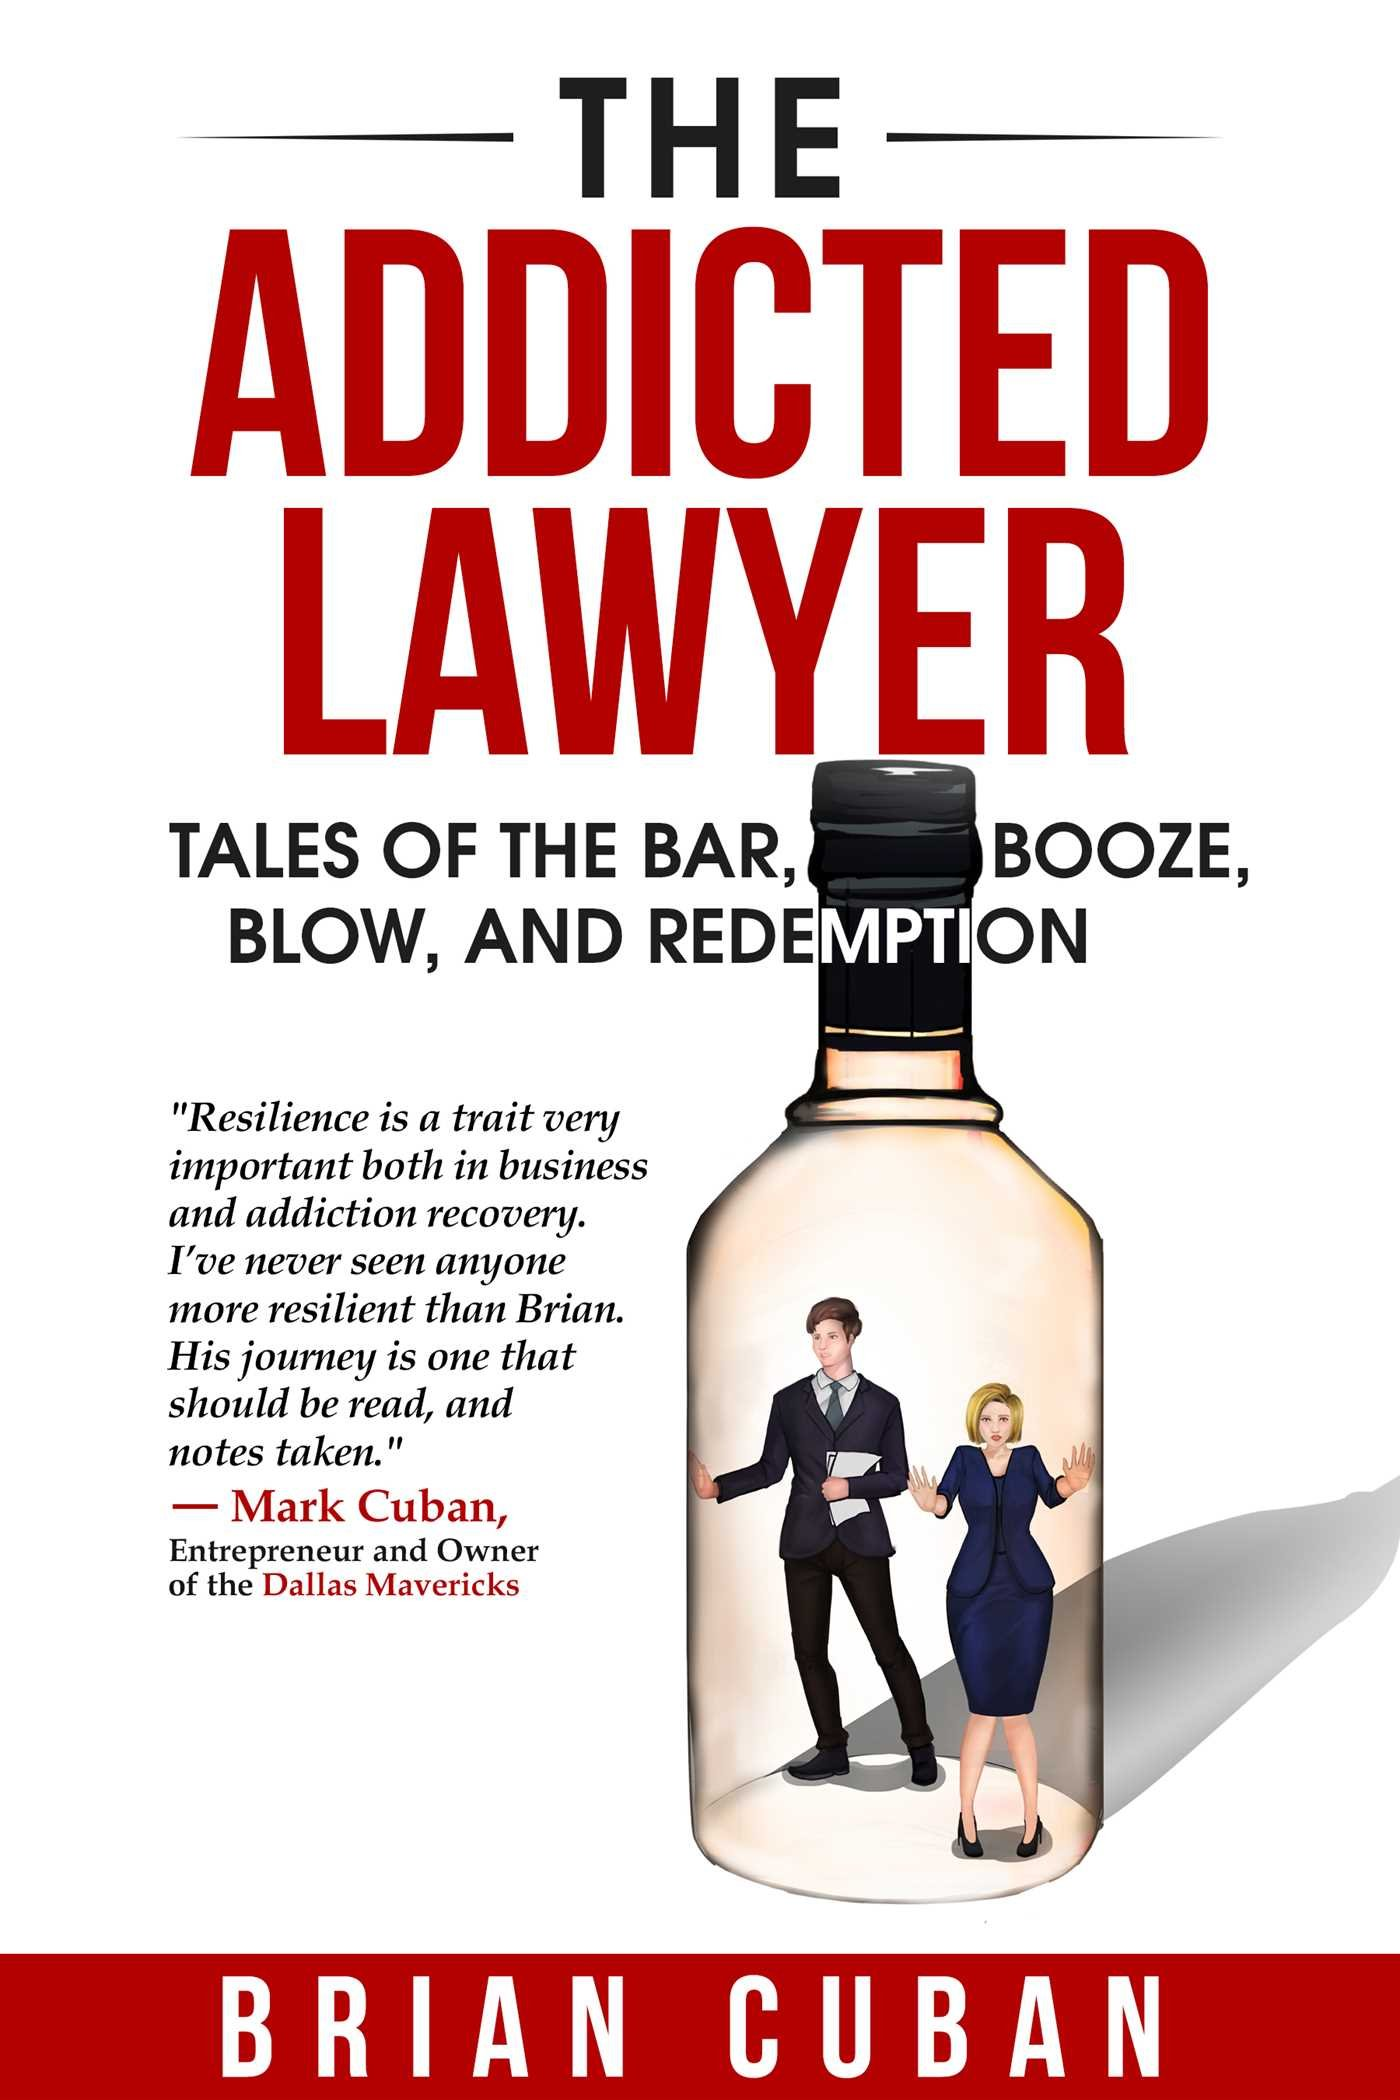 Addicted Lawyer Tales Booze Redemption product image